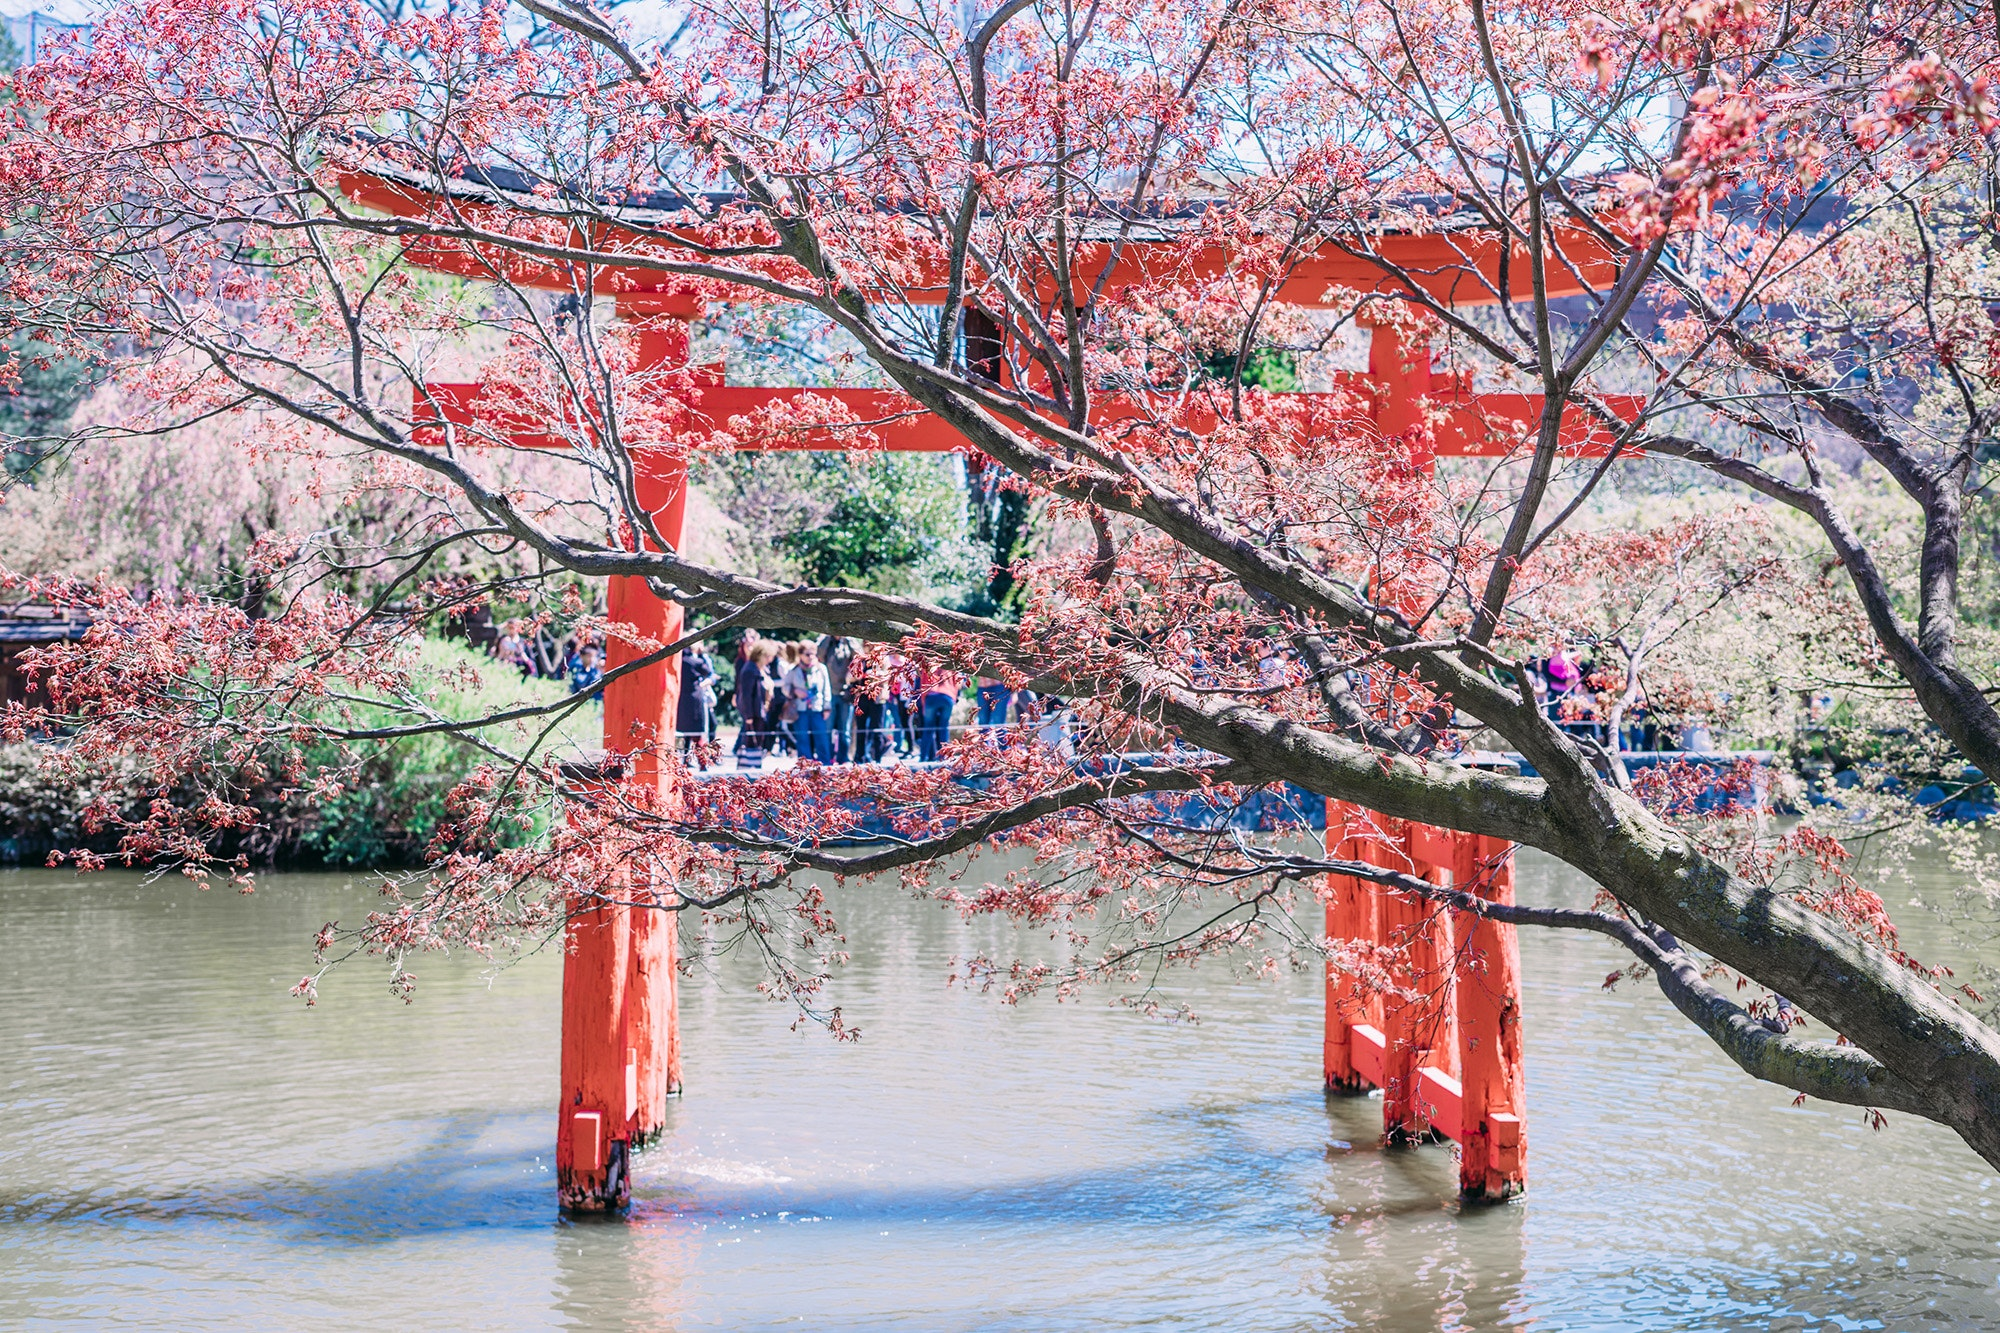 Some of the oldest cherry trees are located around the Japanese Hill-and-Pond Garden at the Brooklyn Botanic Garden.